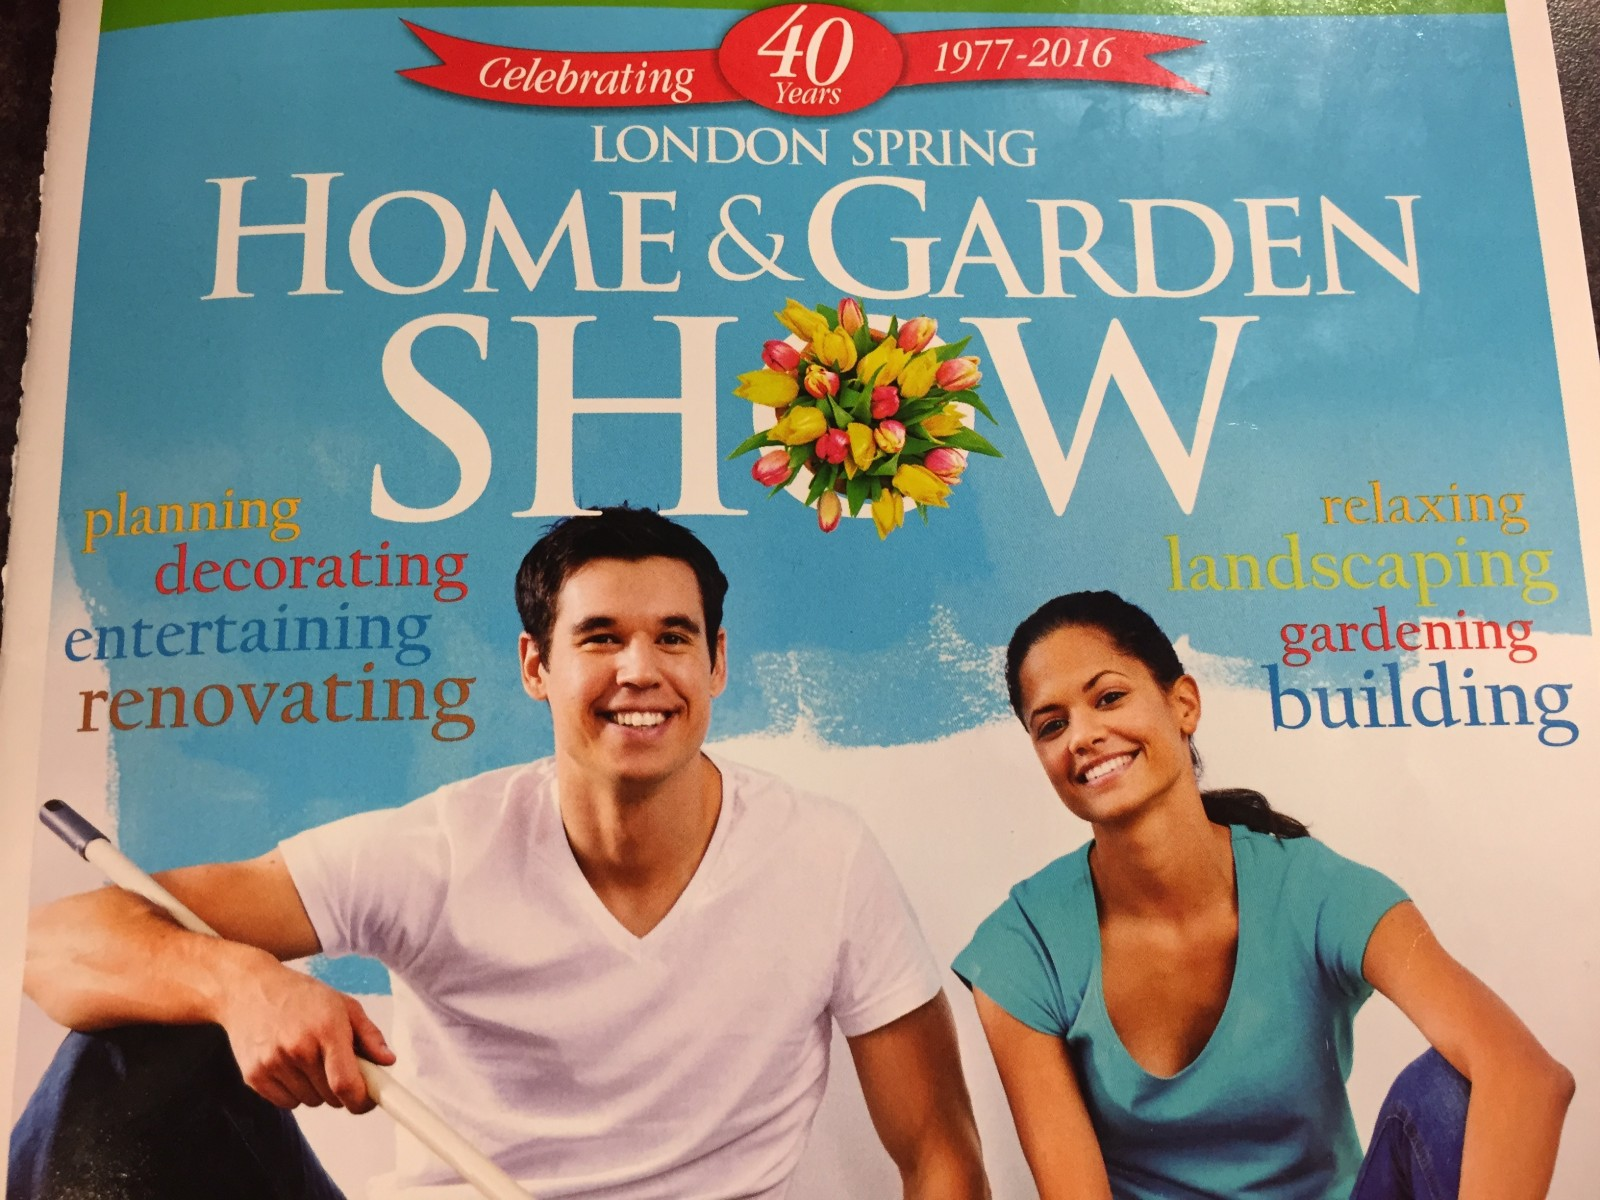 London Spring Home and Garden Show celebrates 40 years